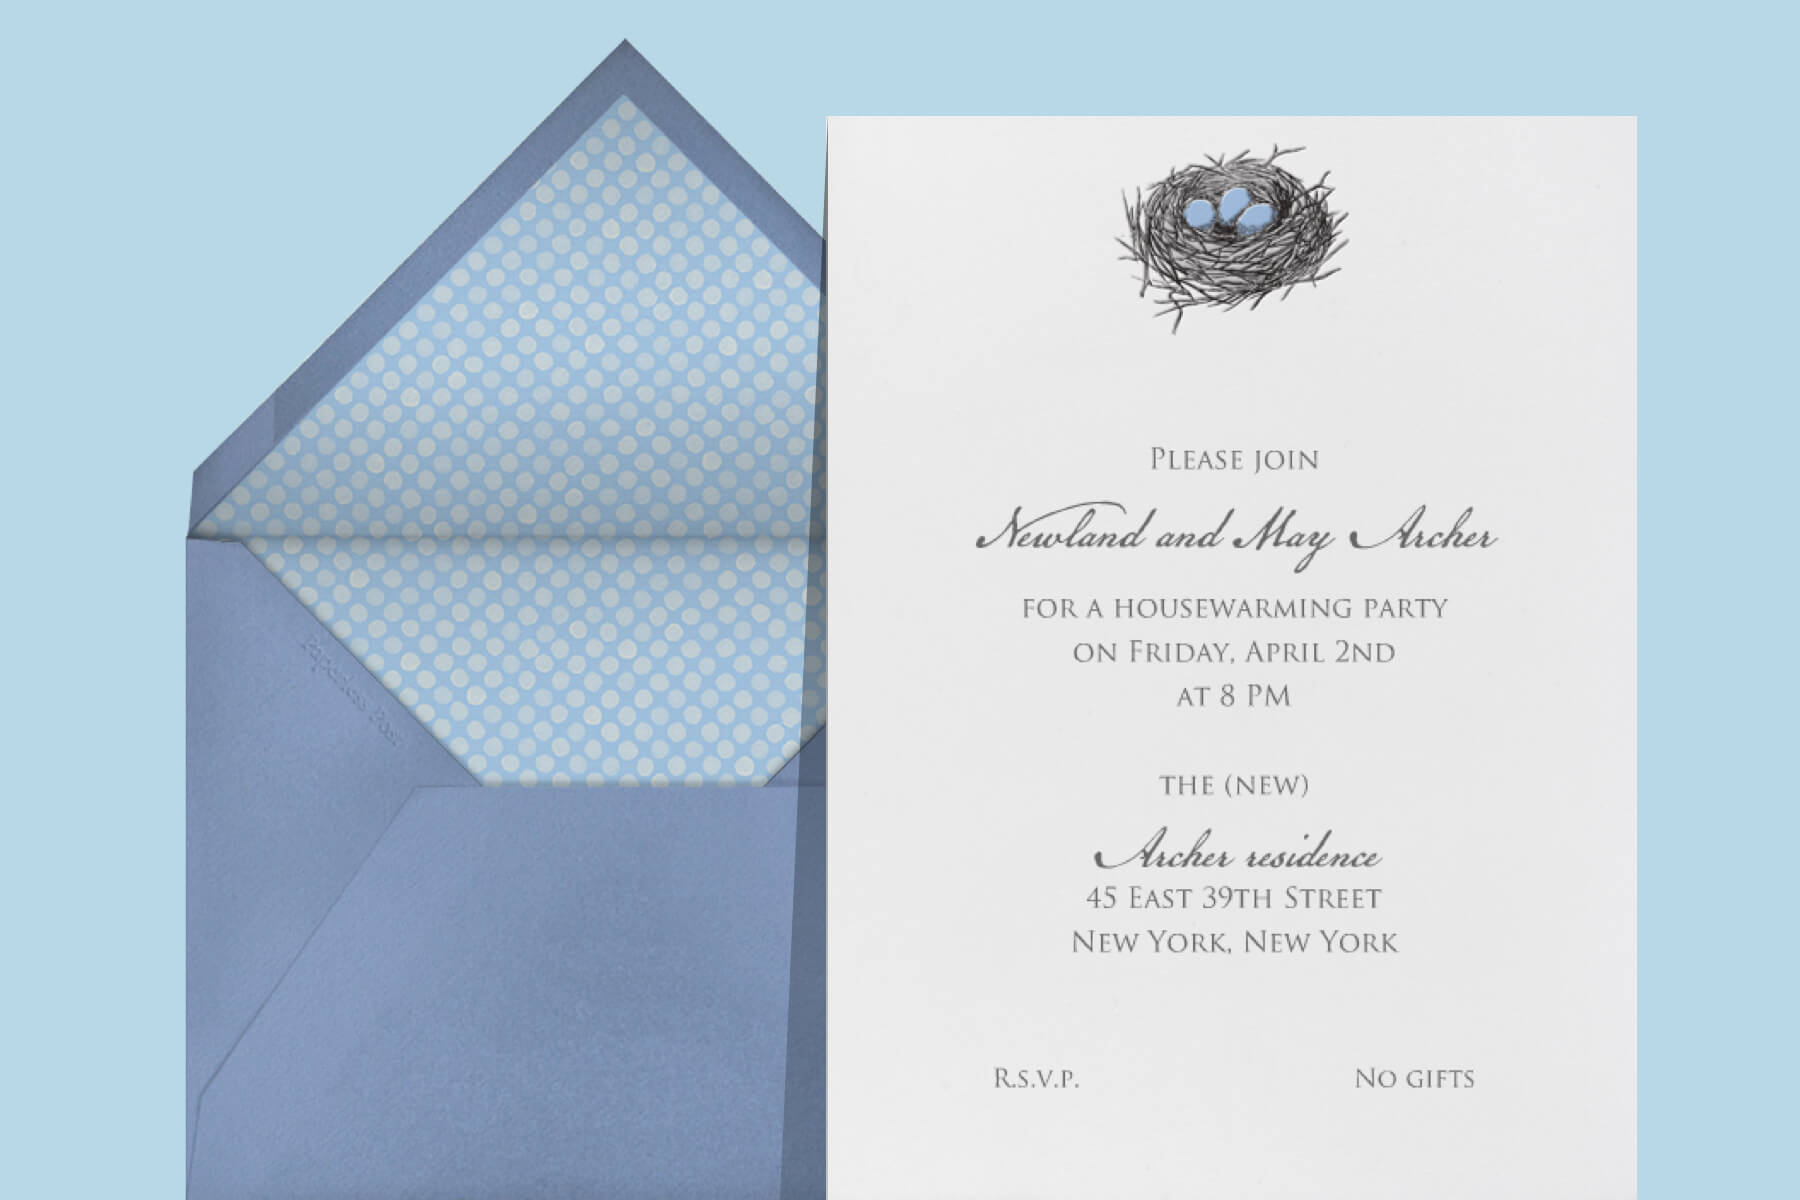 An invitation with a small illustration of a bird's nest with blue eggs.